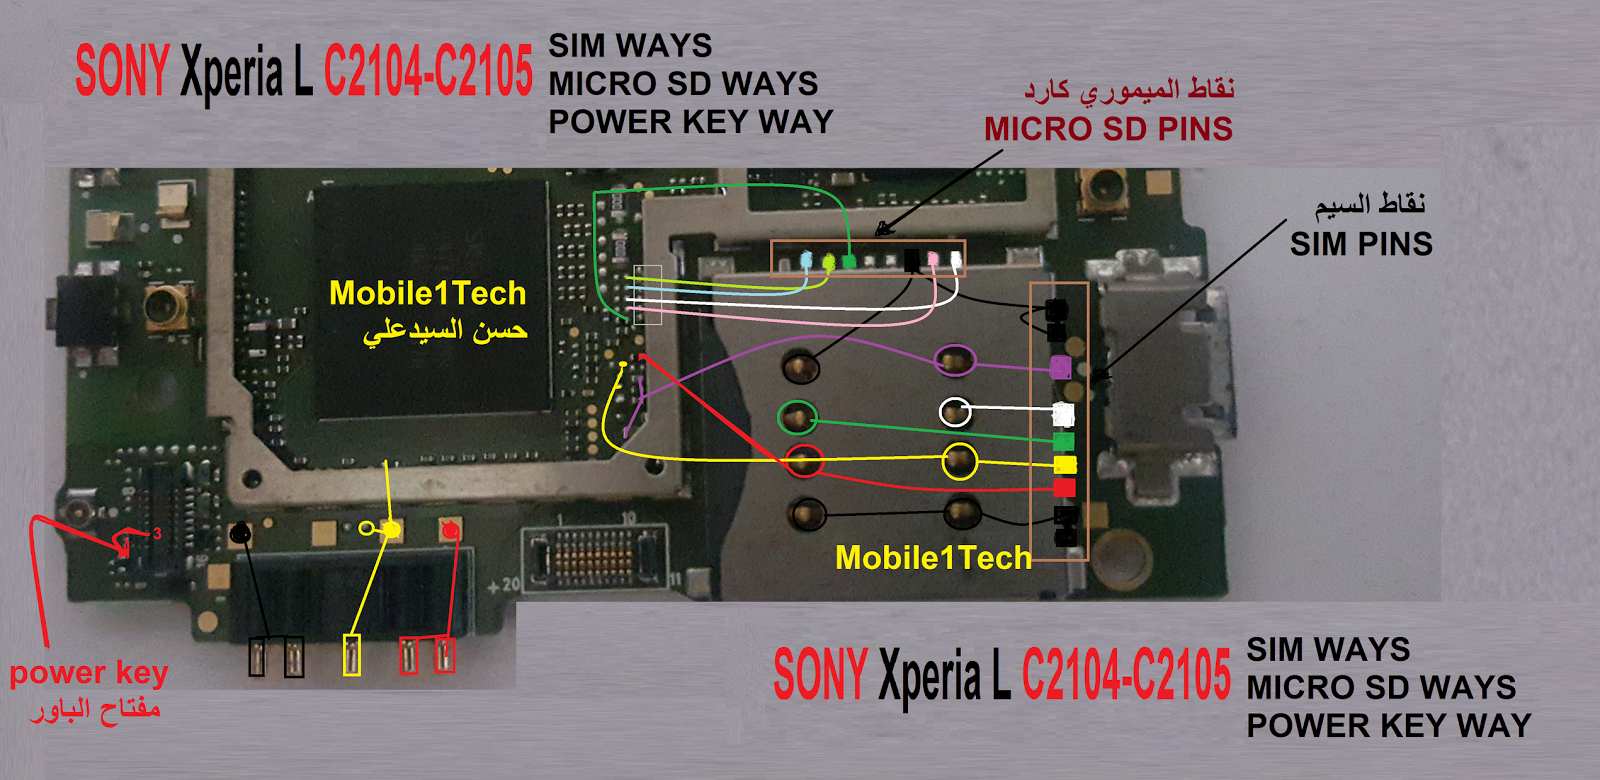 small resolution of sony xperia l circuit diagram wiring diagram paper sony xperia l c2104 c2105 full schematic mobile1tech